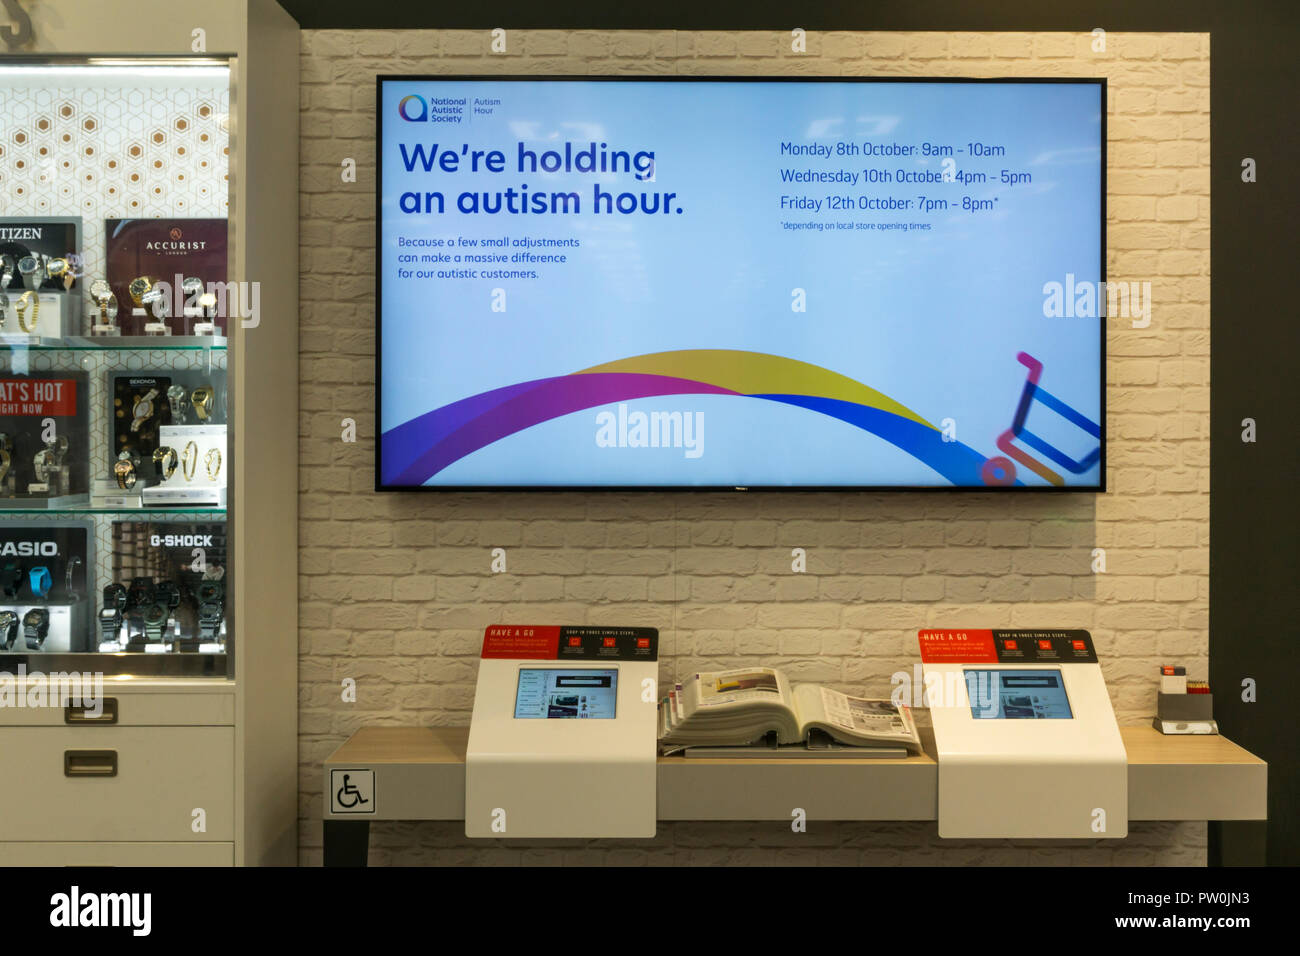 Wheelchair accessible terminals in Argos shop & screen announcing Autism Hour. - Stock Image